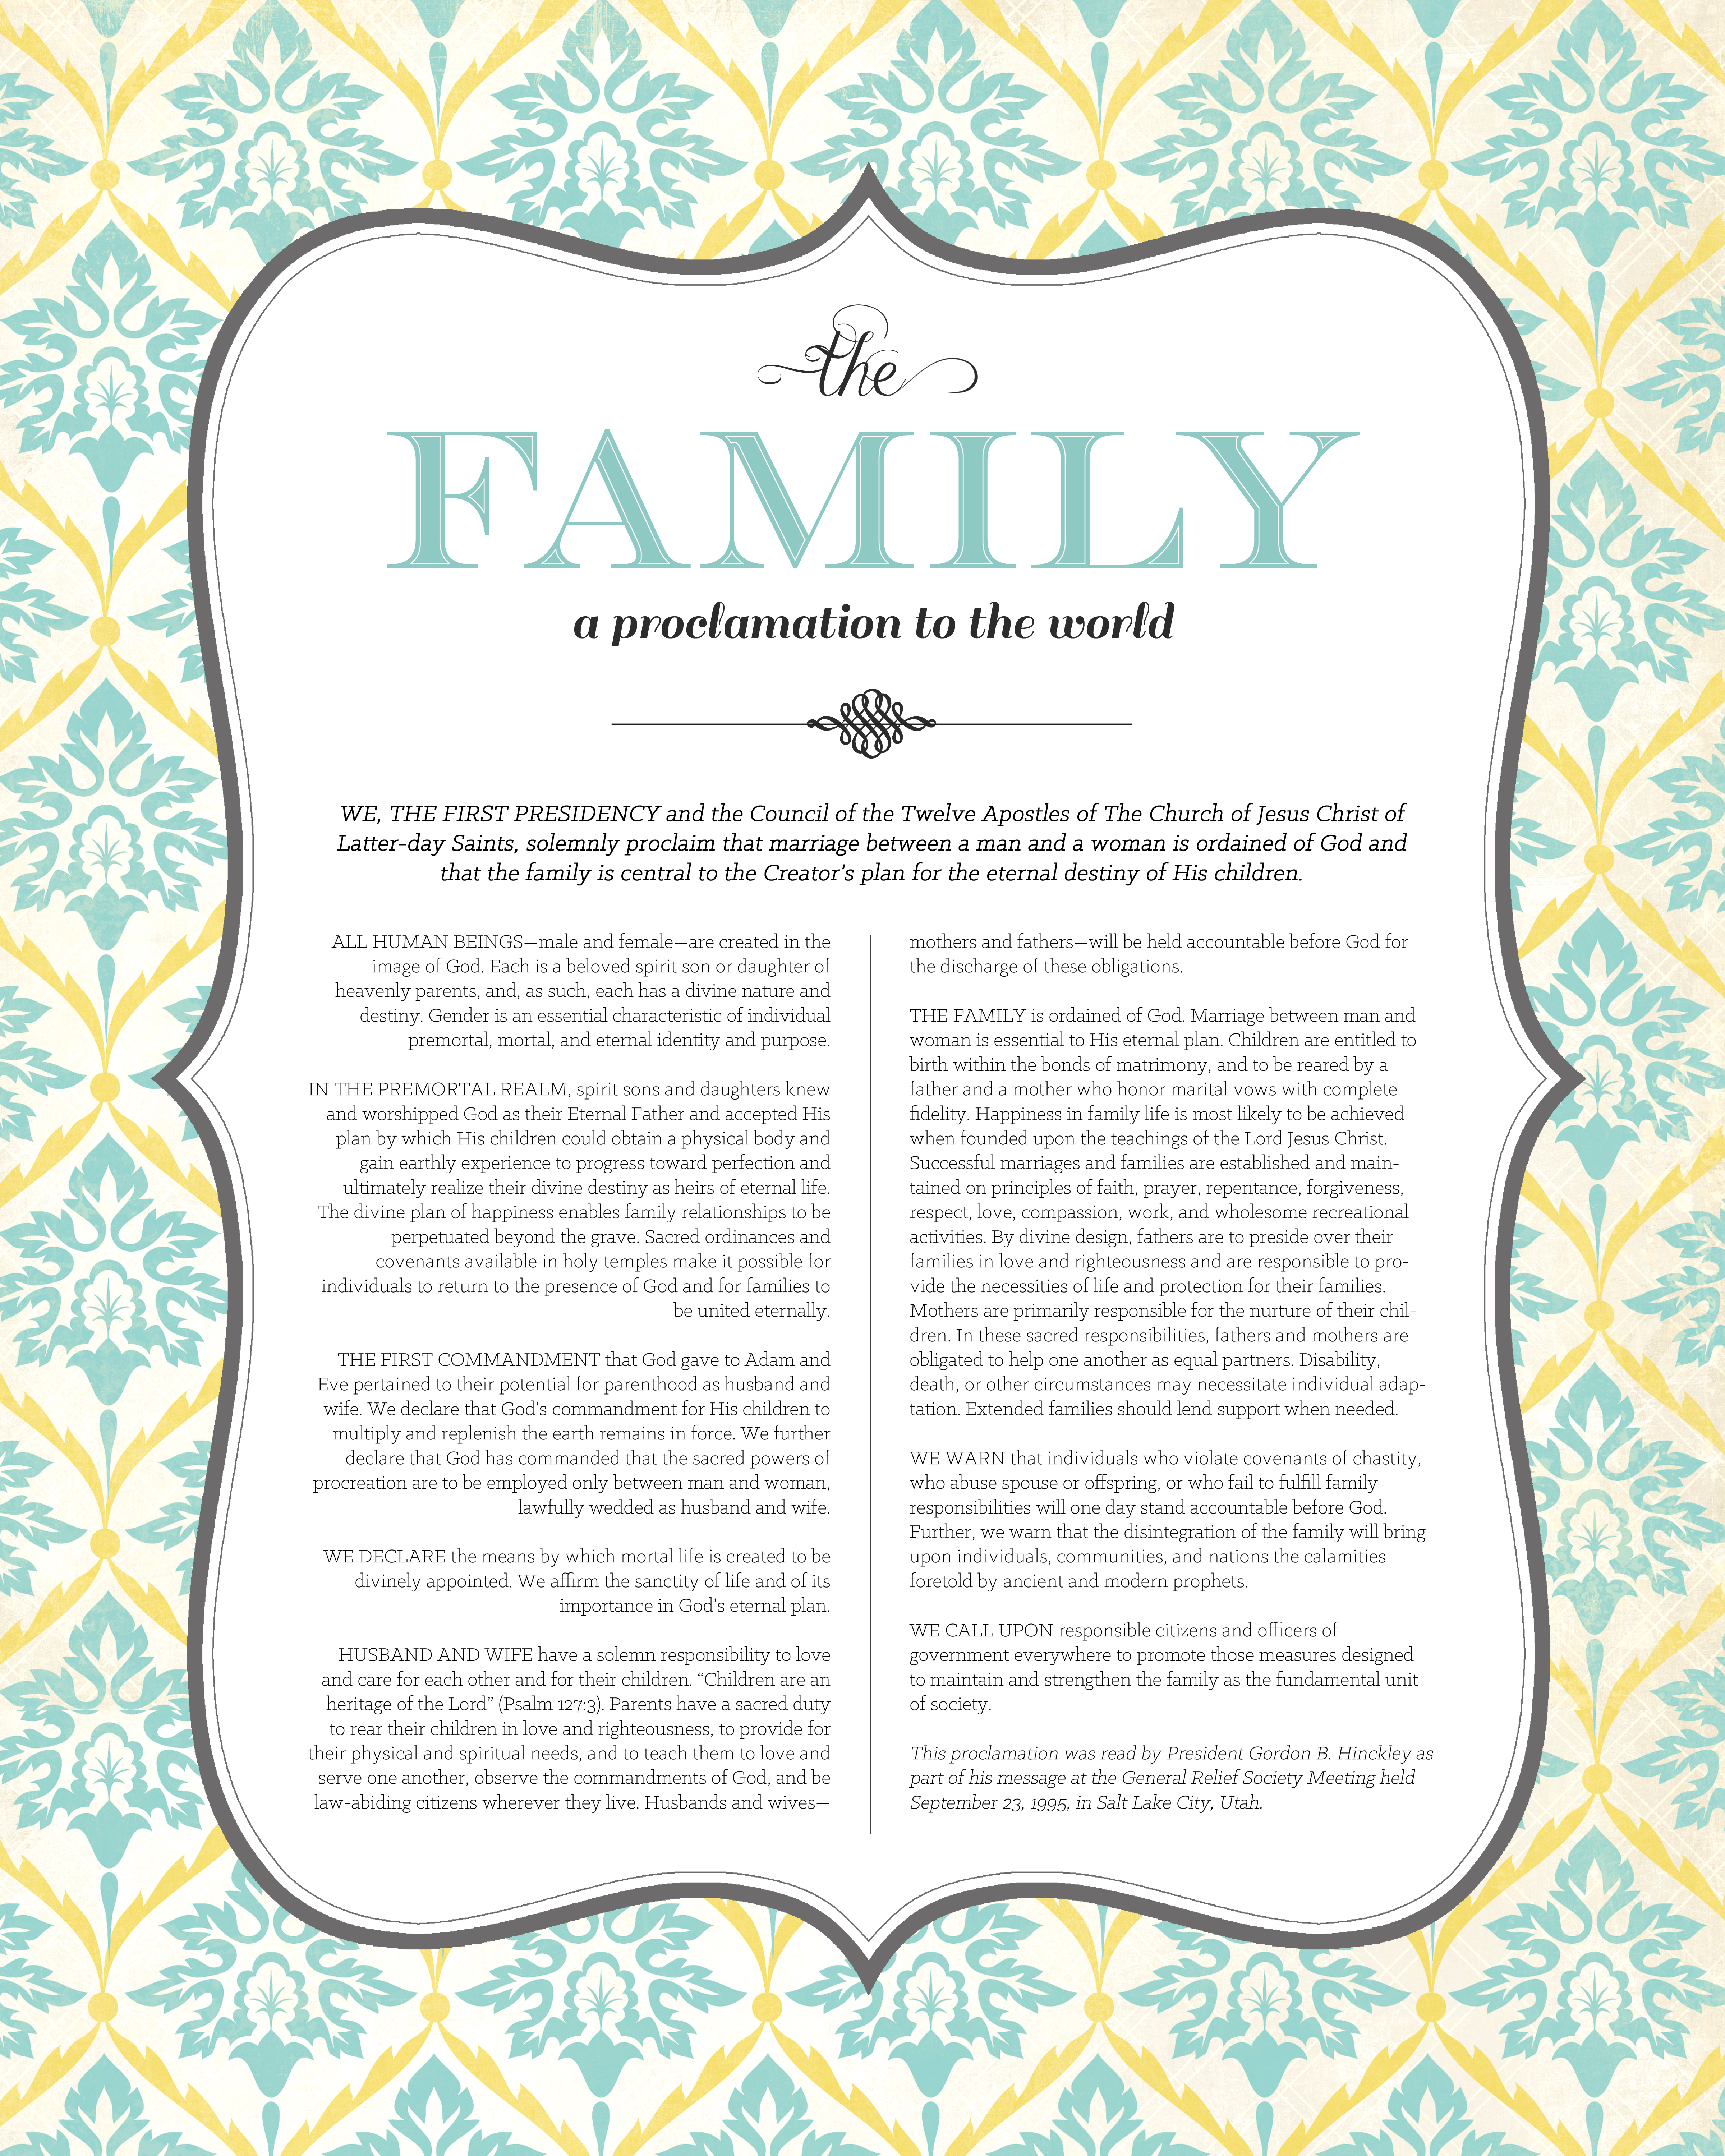 photograph about The Family a Proclamation to the World Printable called The Loved ones: A Proclamation toward the Worldwide\